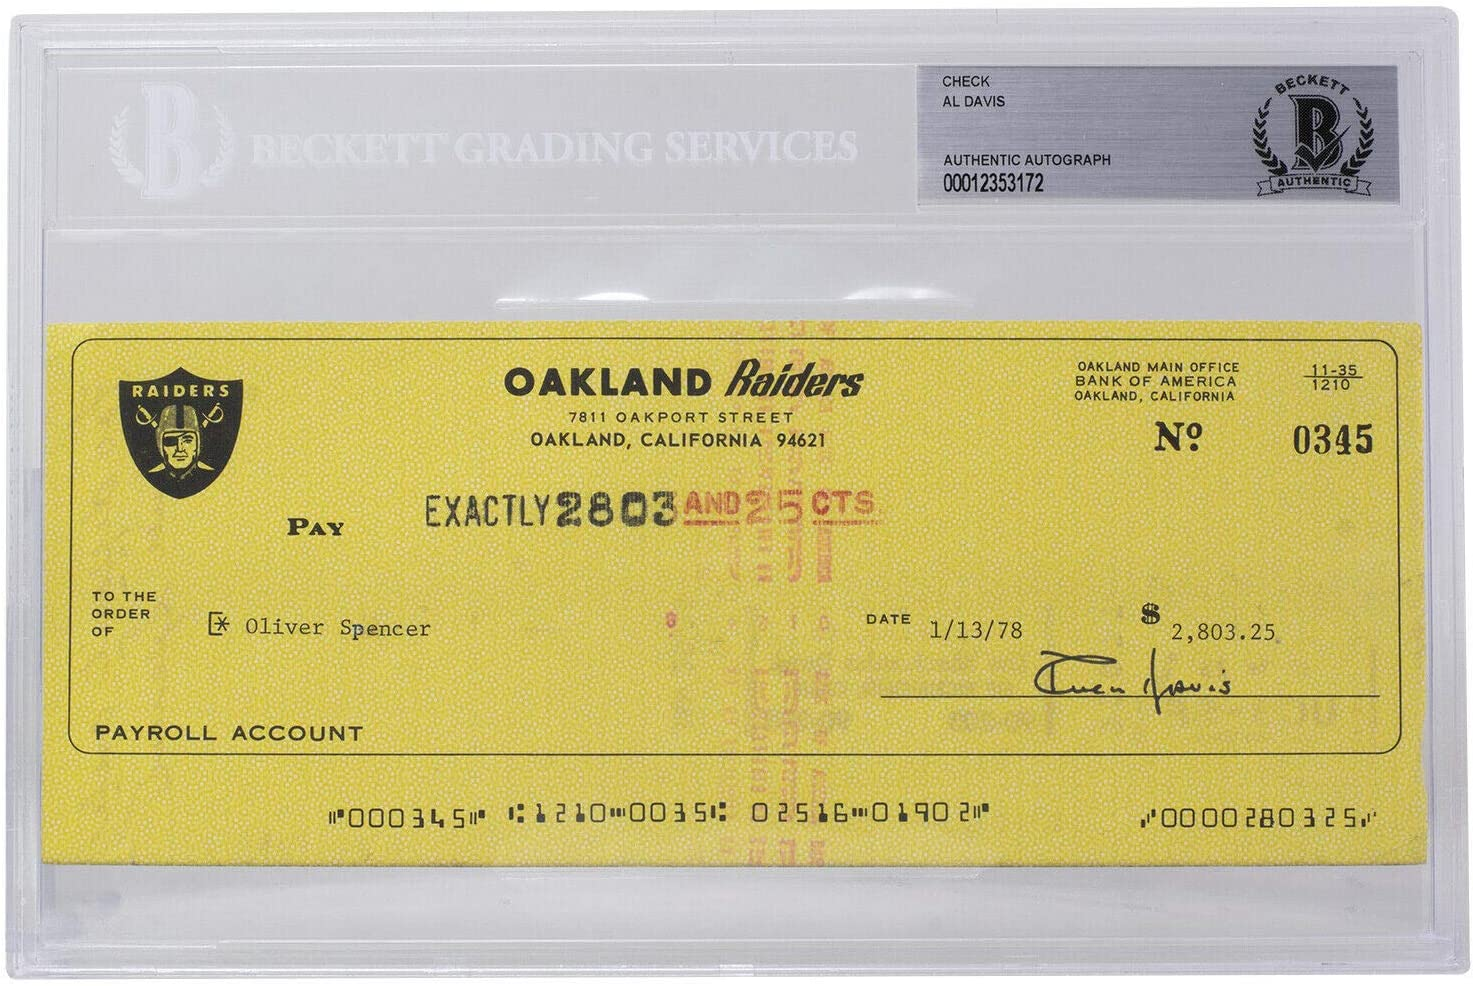 Al Davis Autographed Signed Oakland #0345 BG Recommended Financial sales sale Check Bank Personal